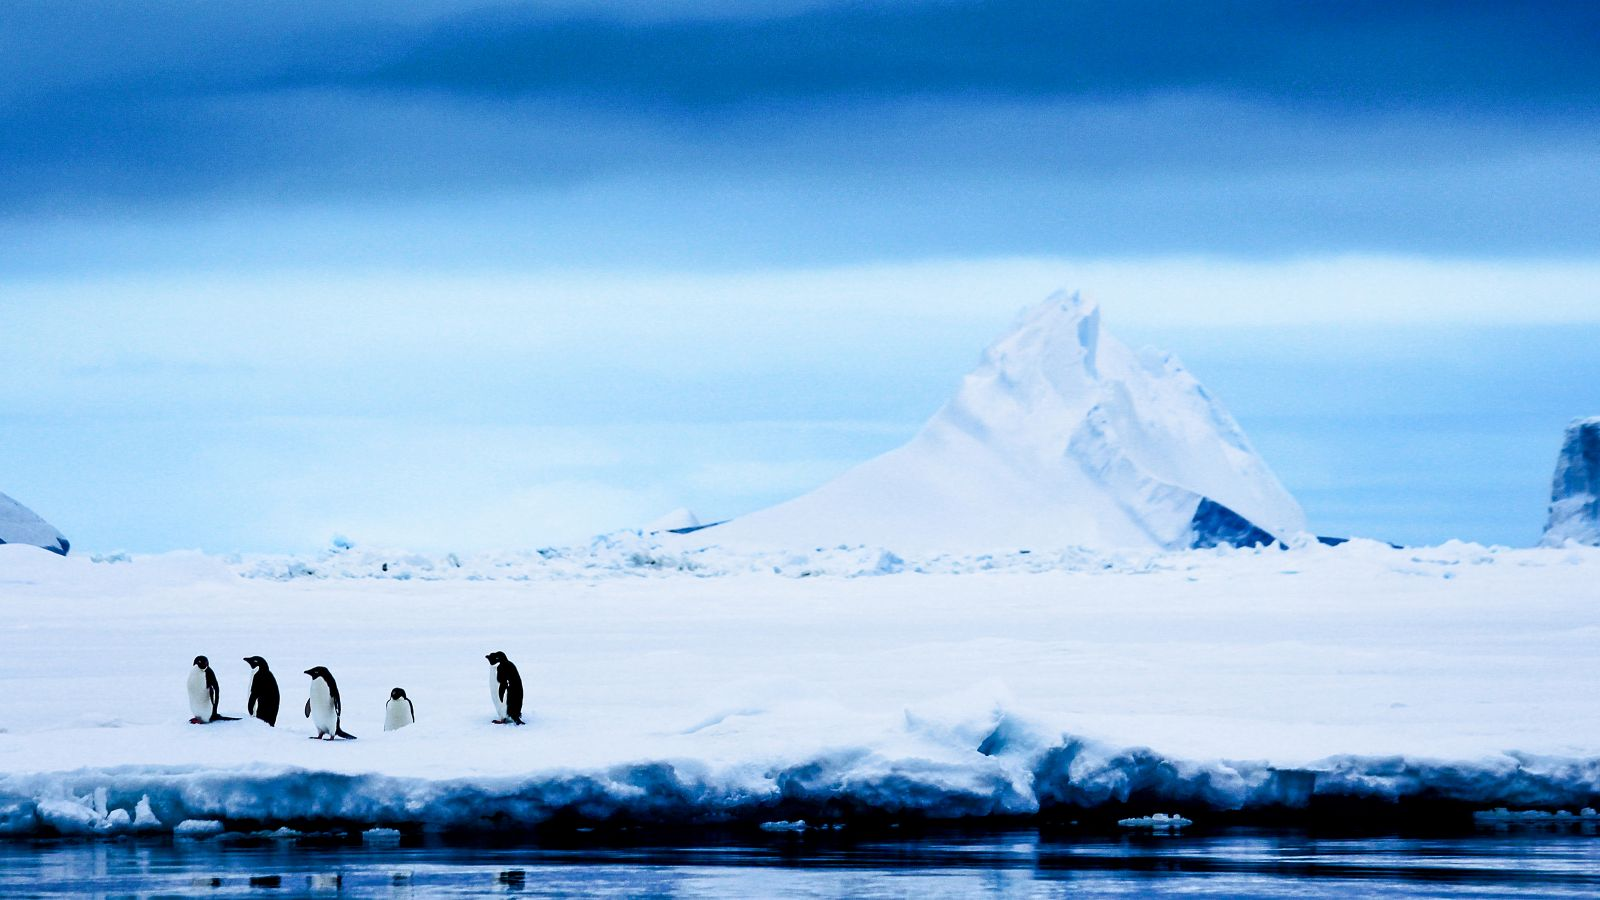 Adelie penguins cluster together in Antarctica.